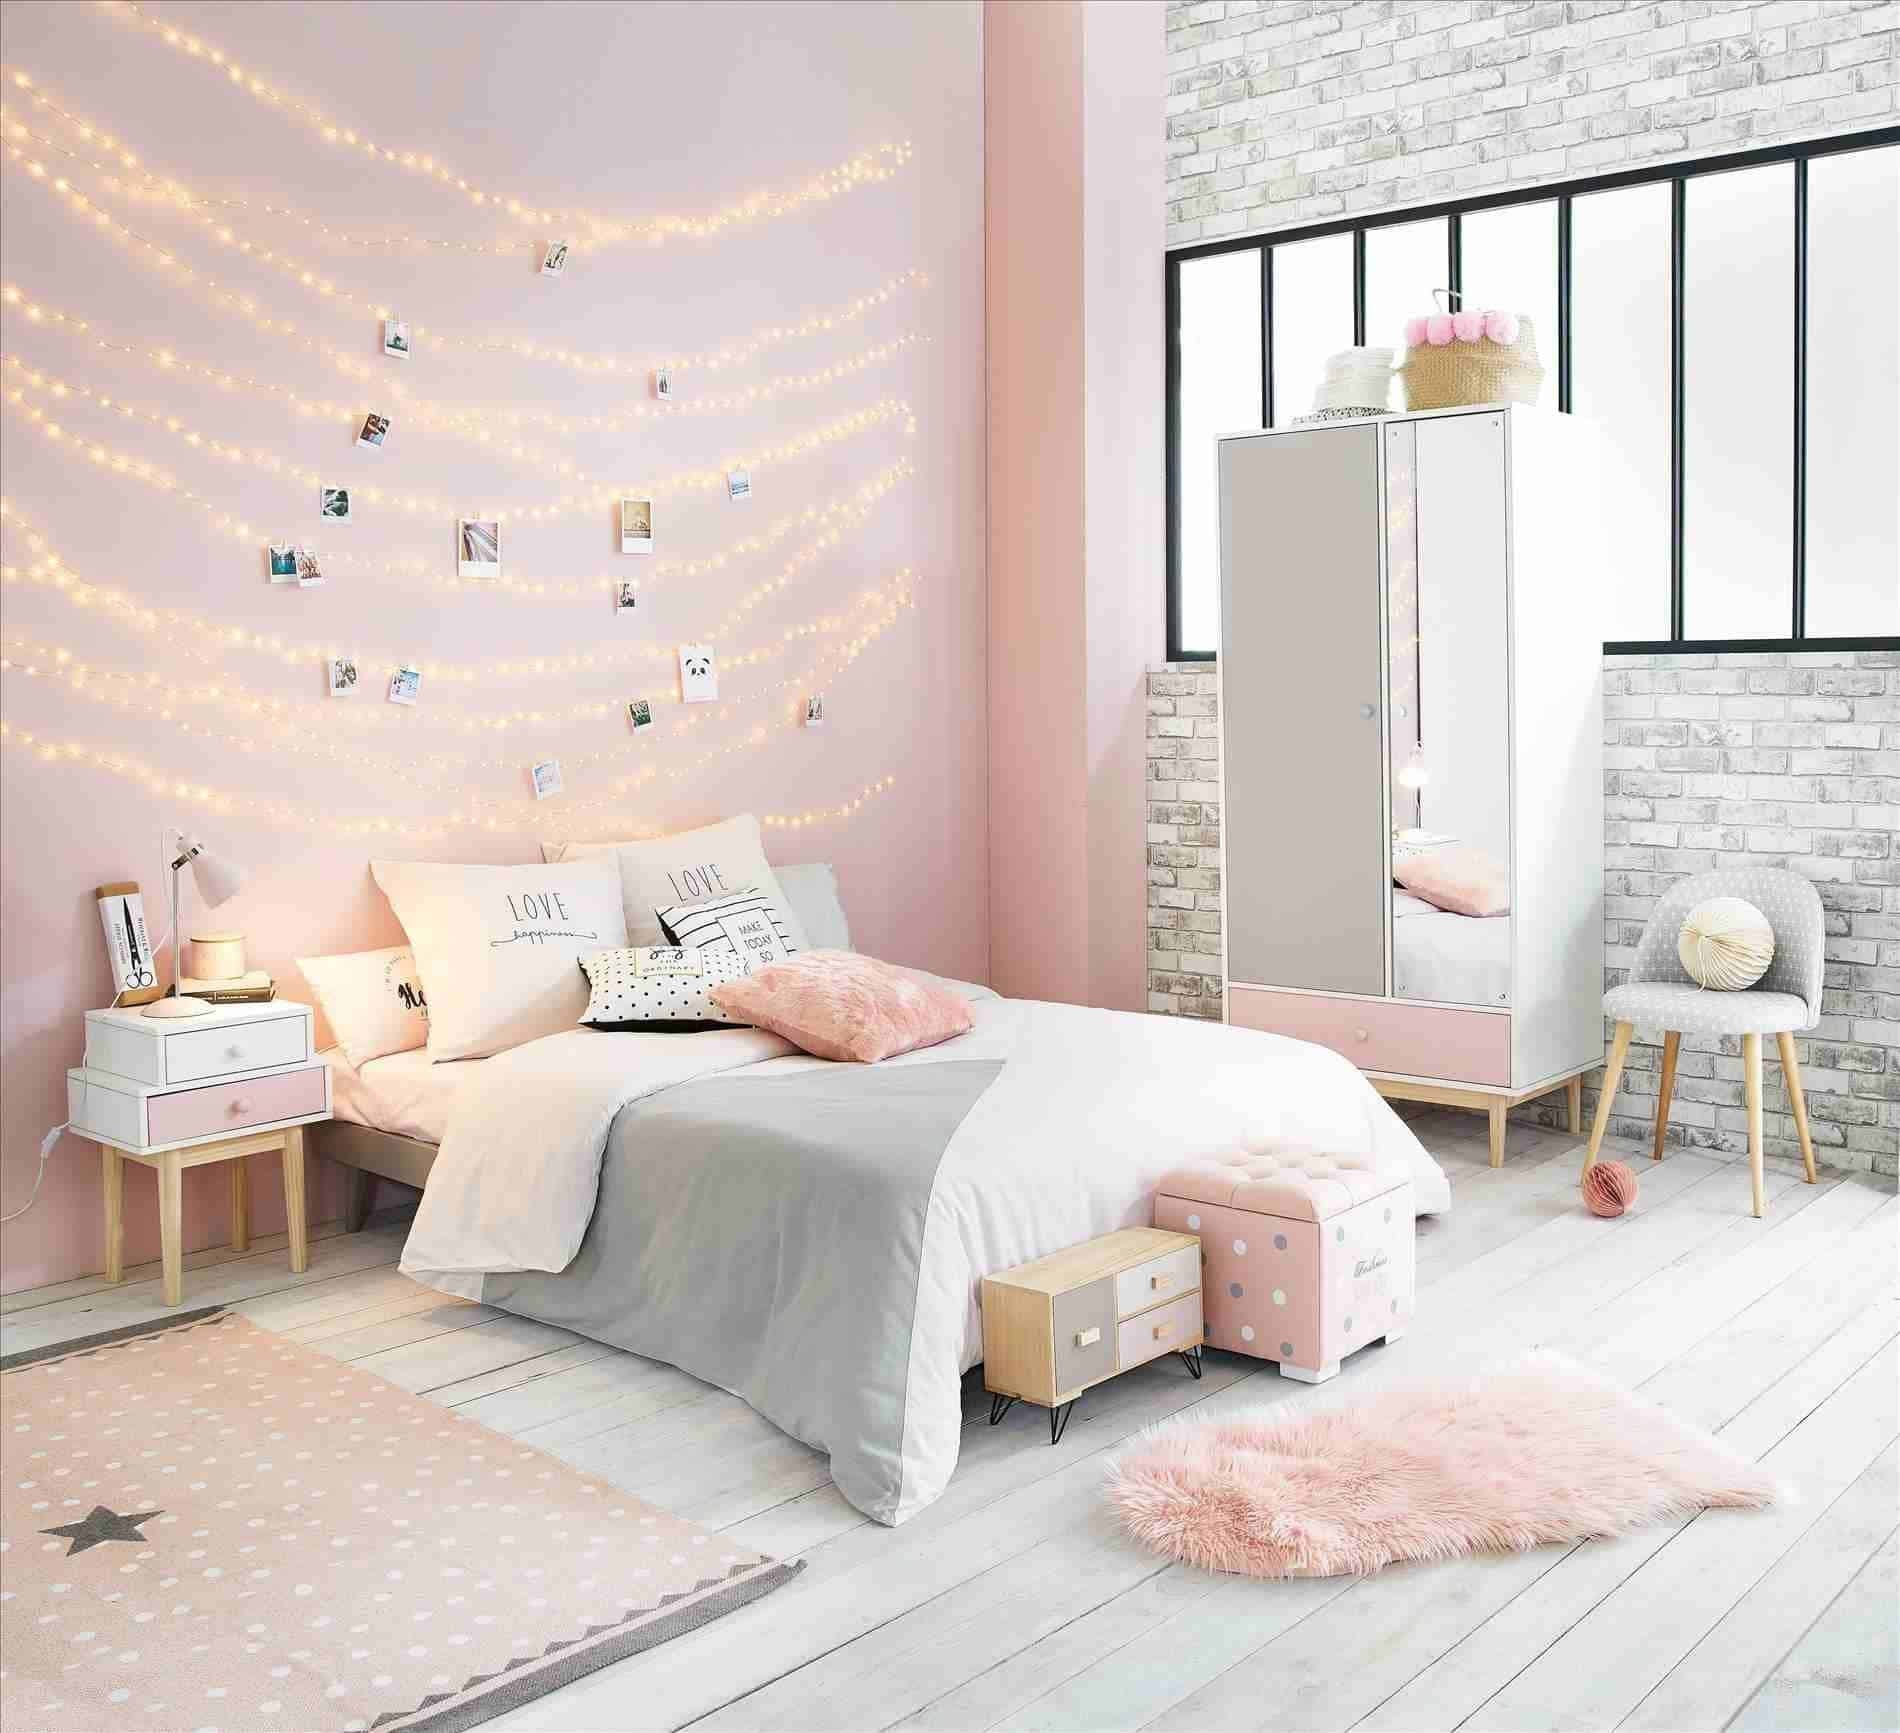 Crazy Cool Kids Bedroom Ideas on Room For Girls  id=86080